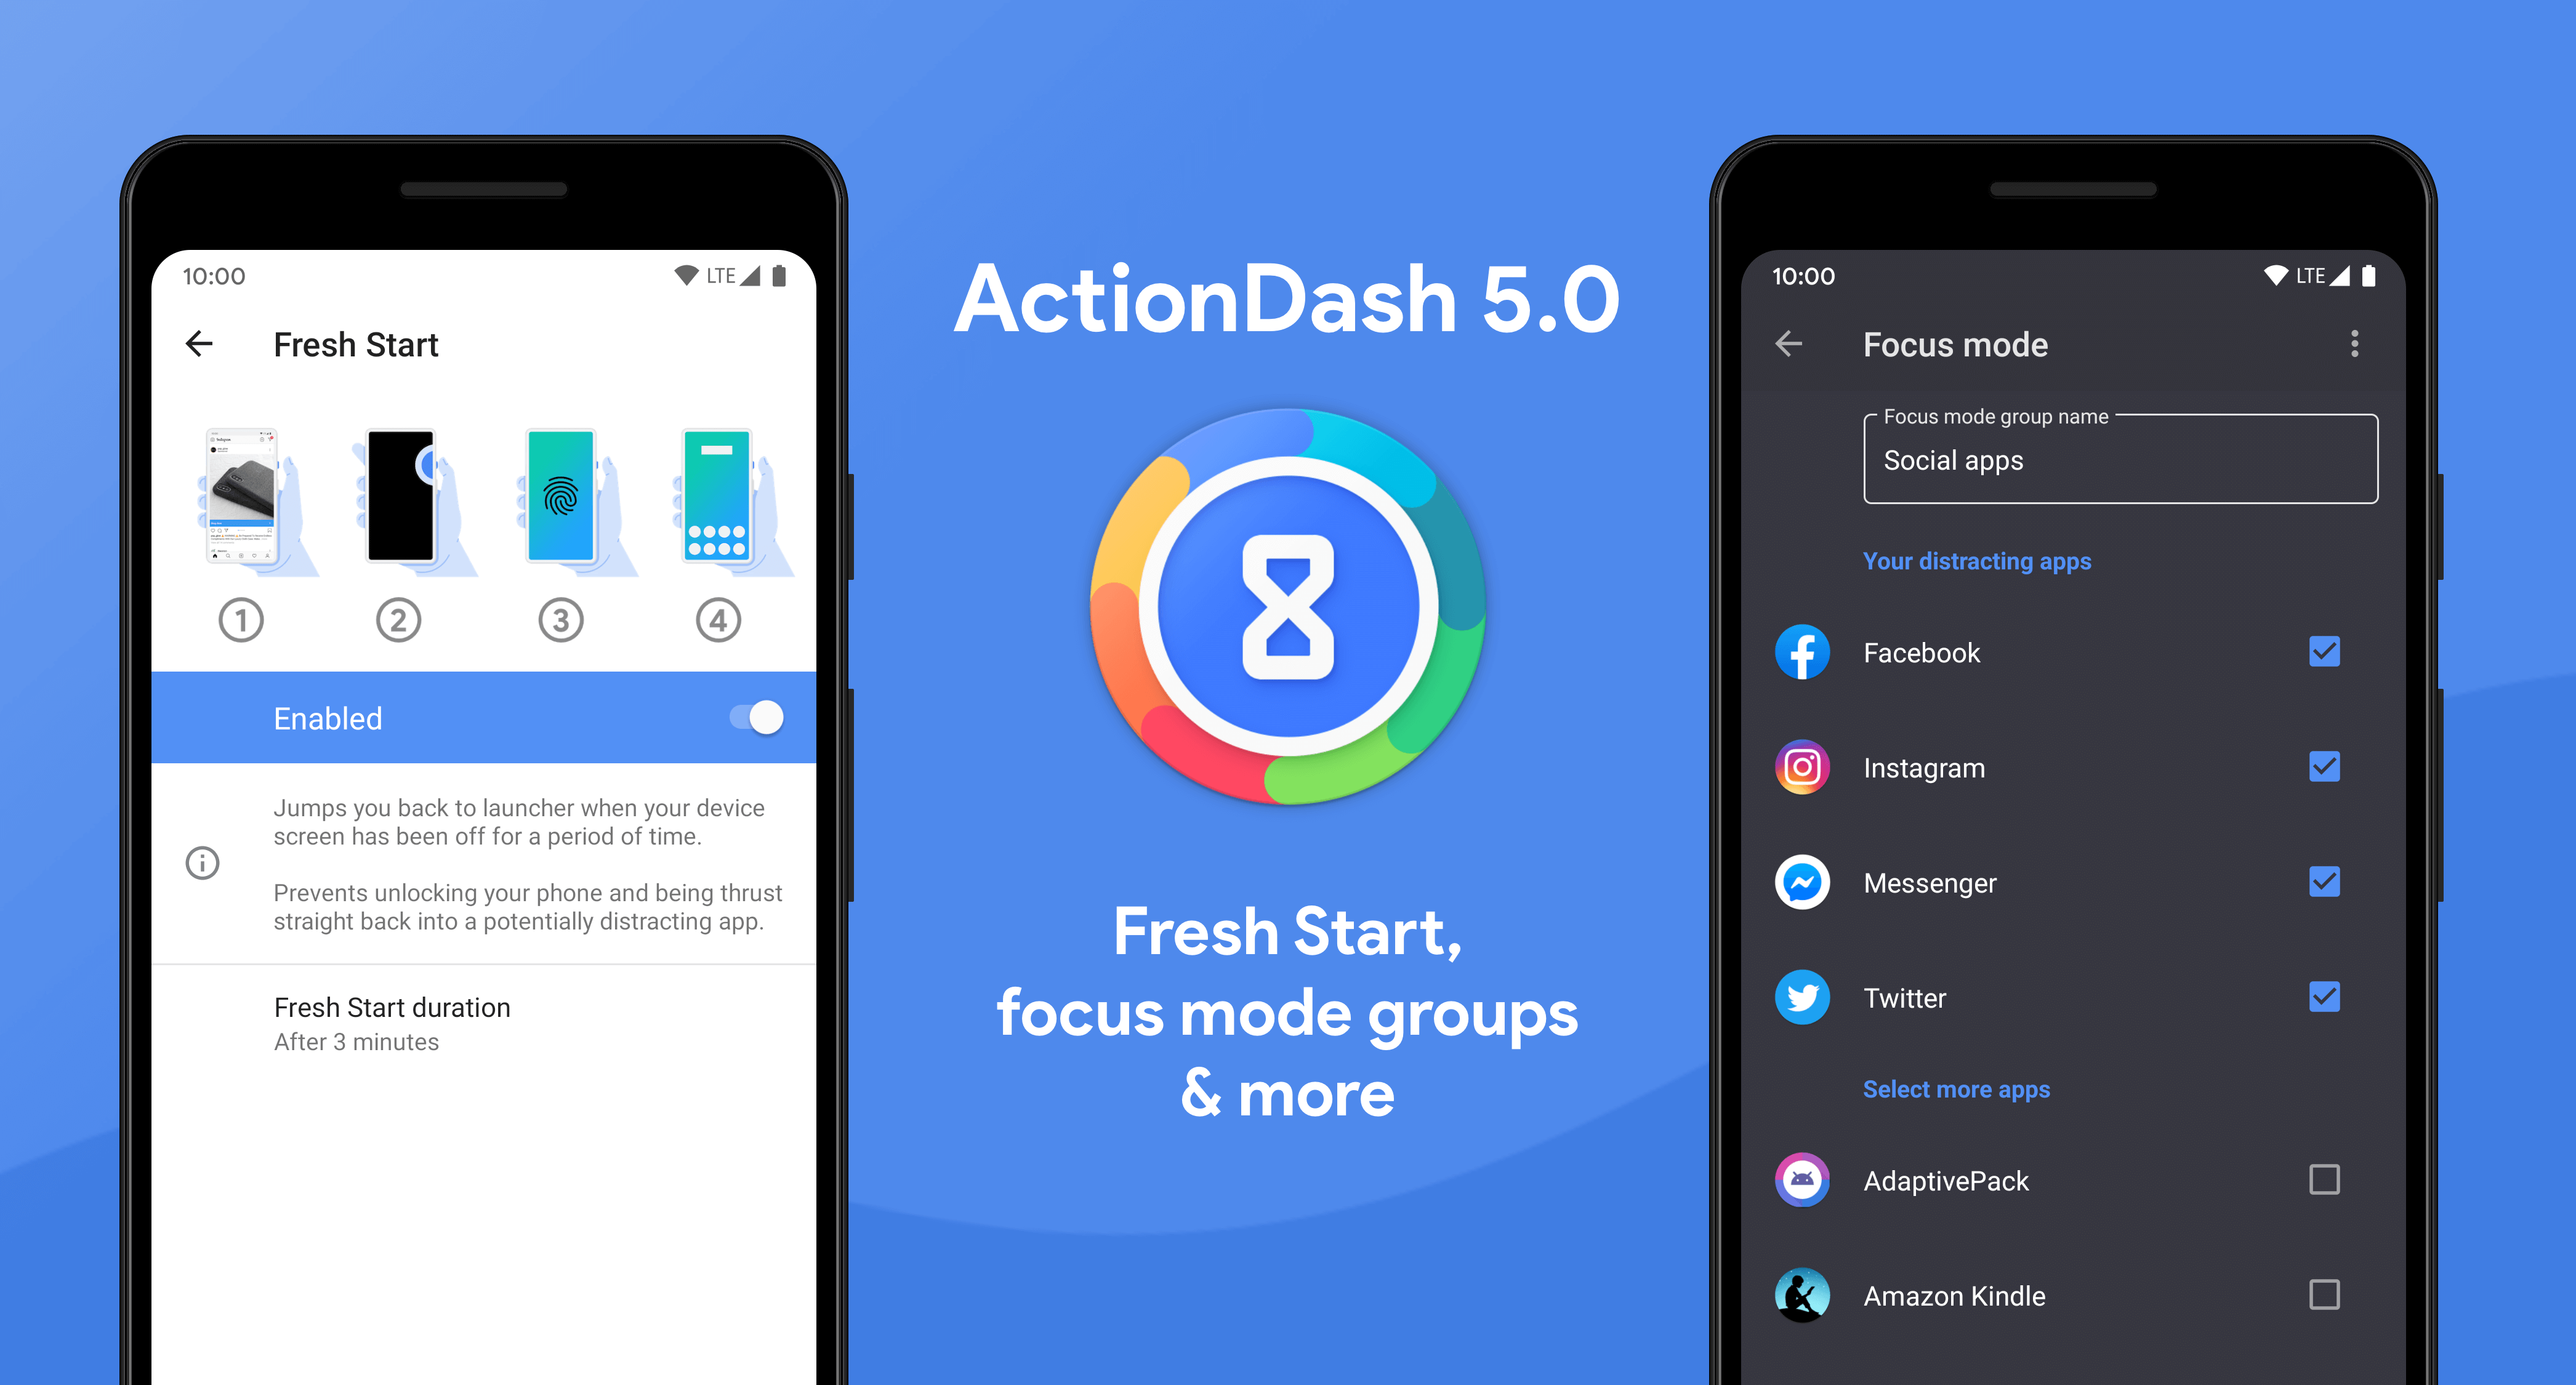 [Update: APK Download] ActionDash v5.0 update introduces Fresh Start feature and additional Focus Mode options